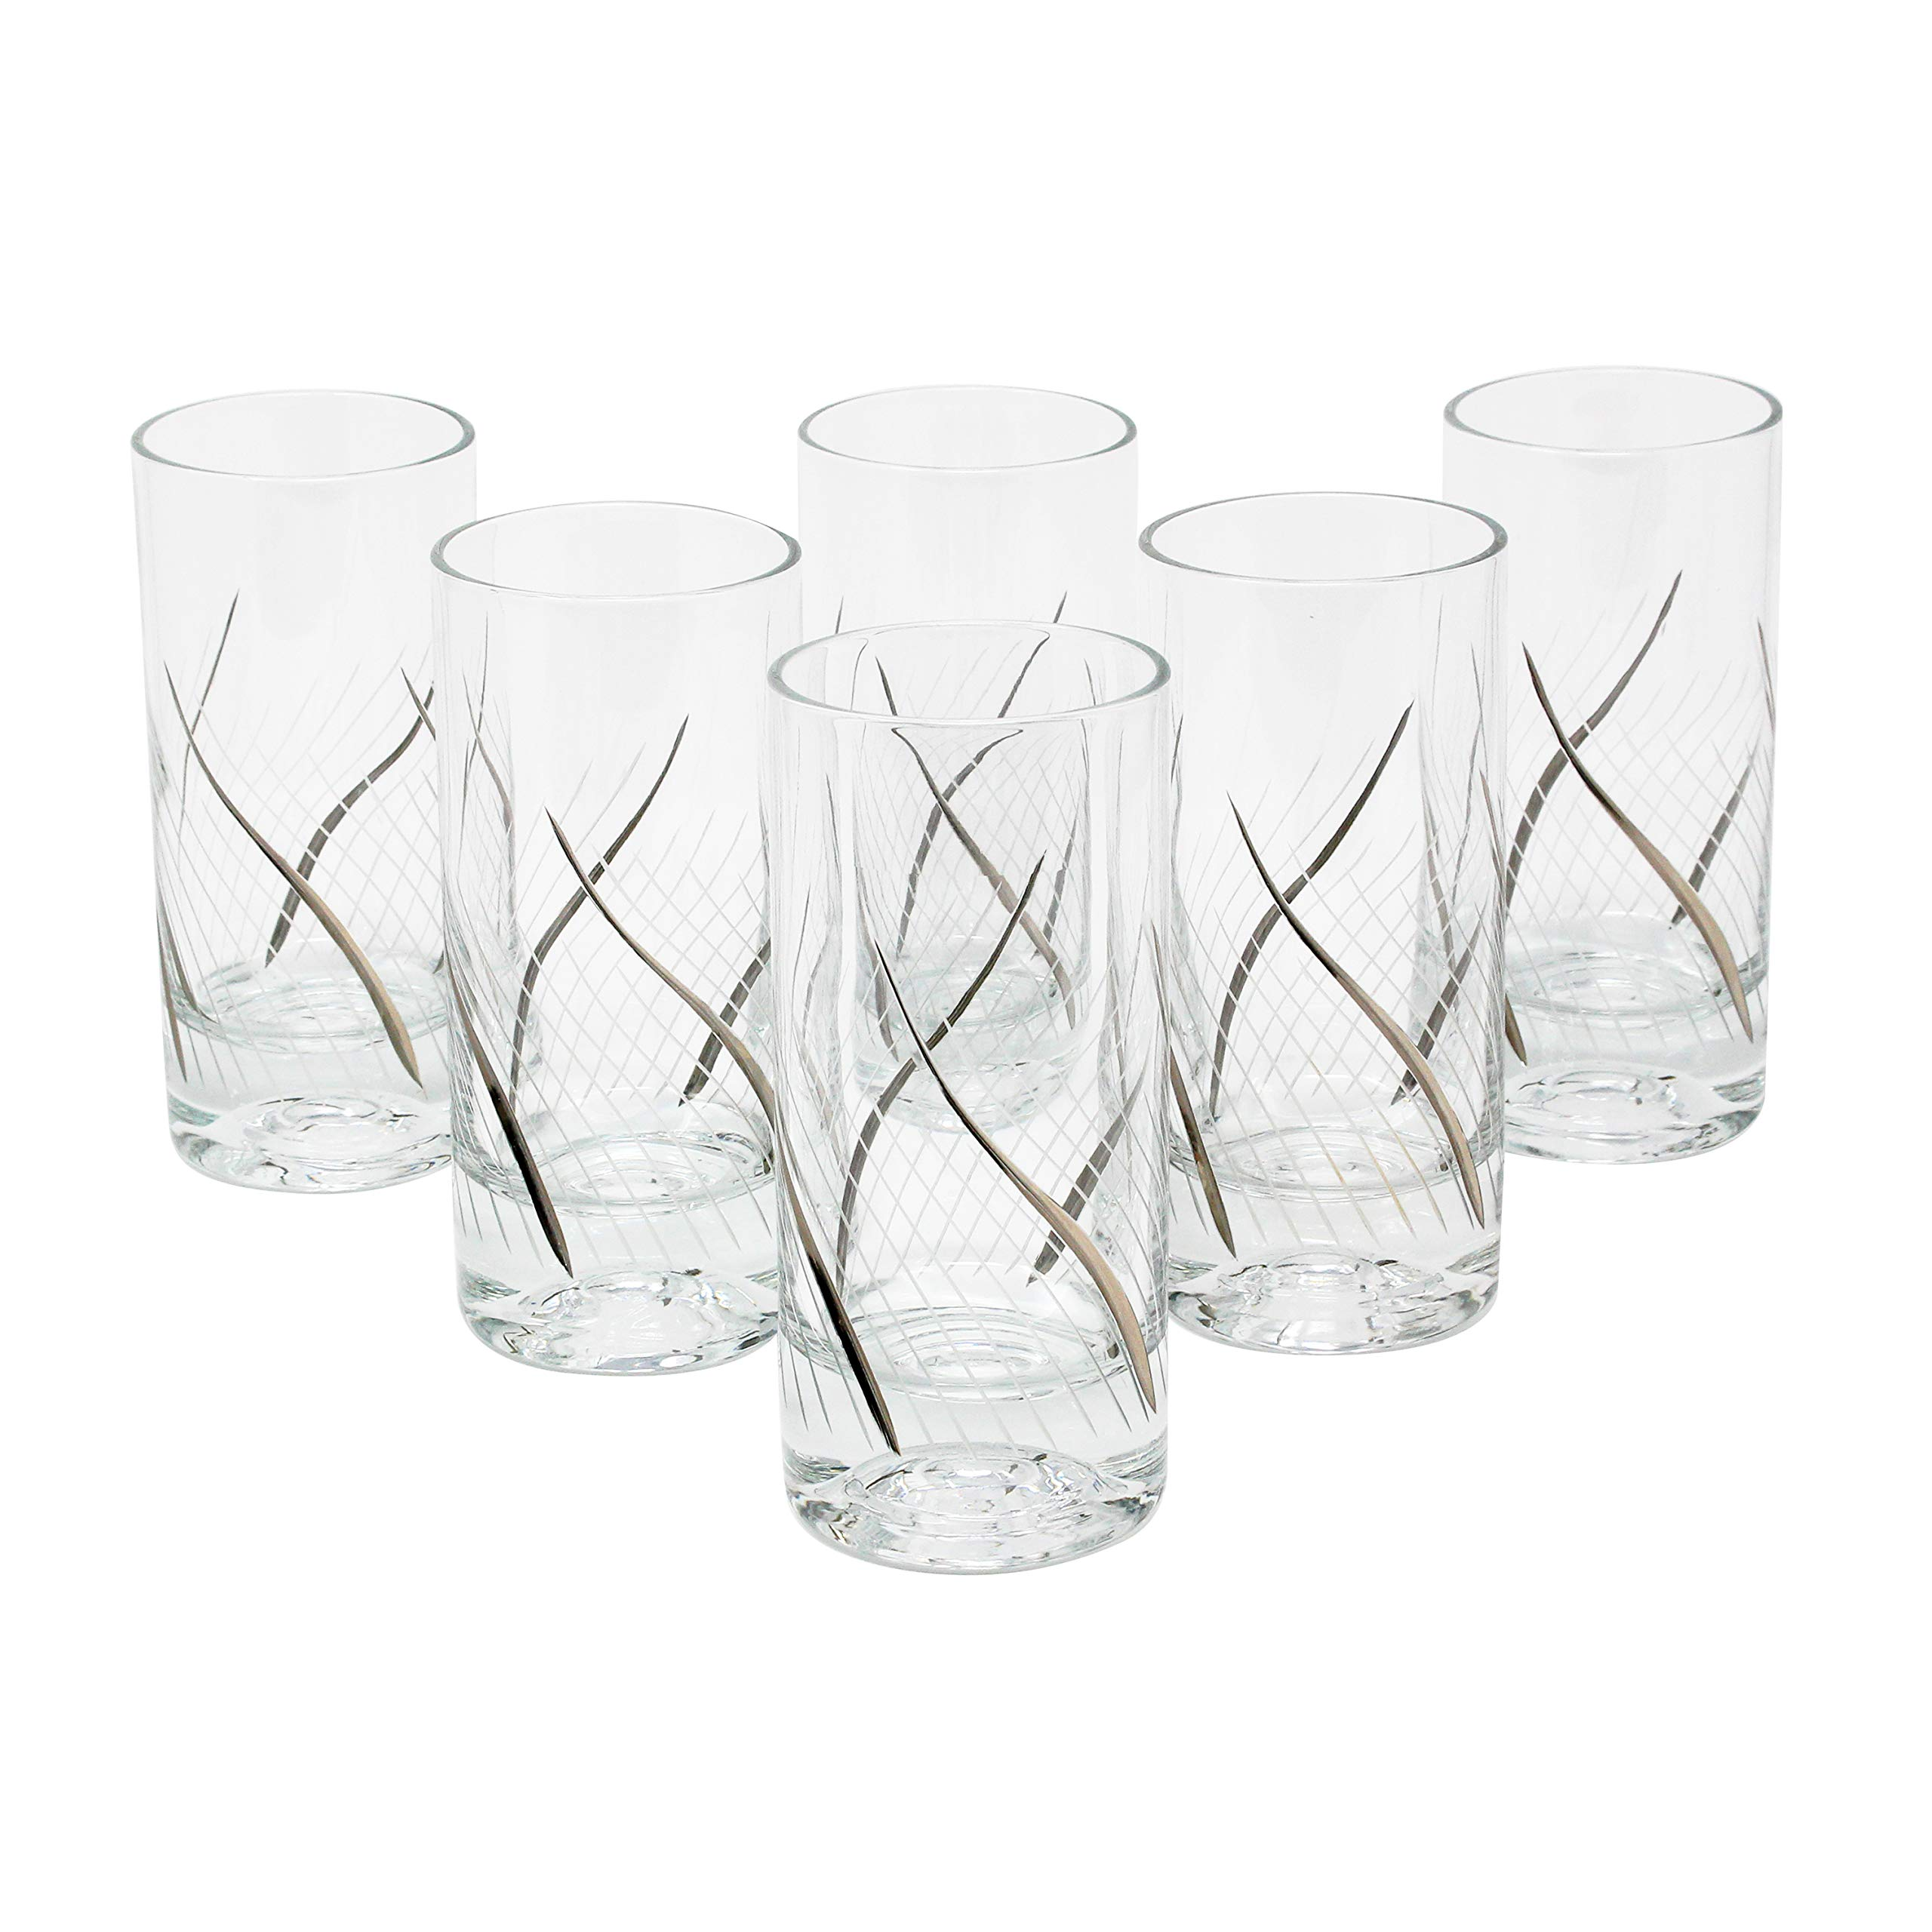 Glazze Crystal RMC-066-PL 24K Platinum Set of 6 Highball glasses, 6''H,